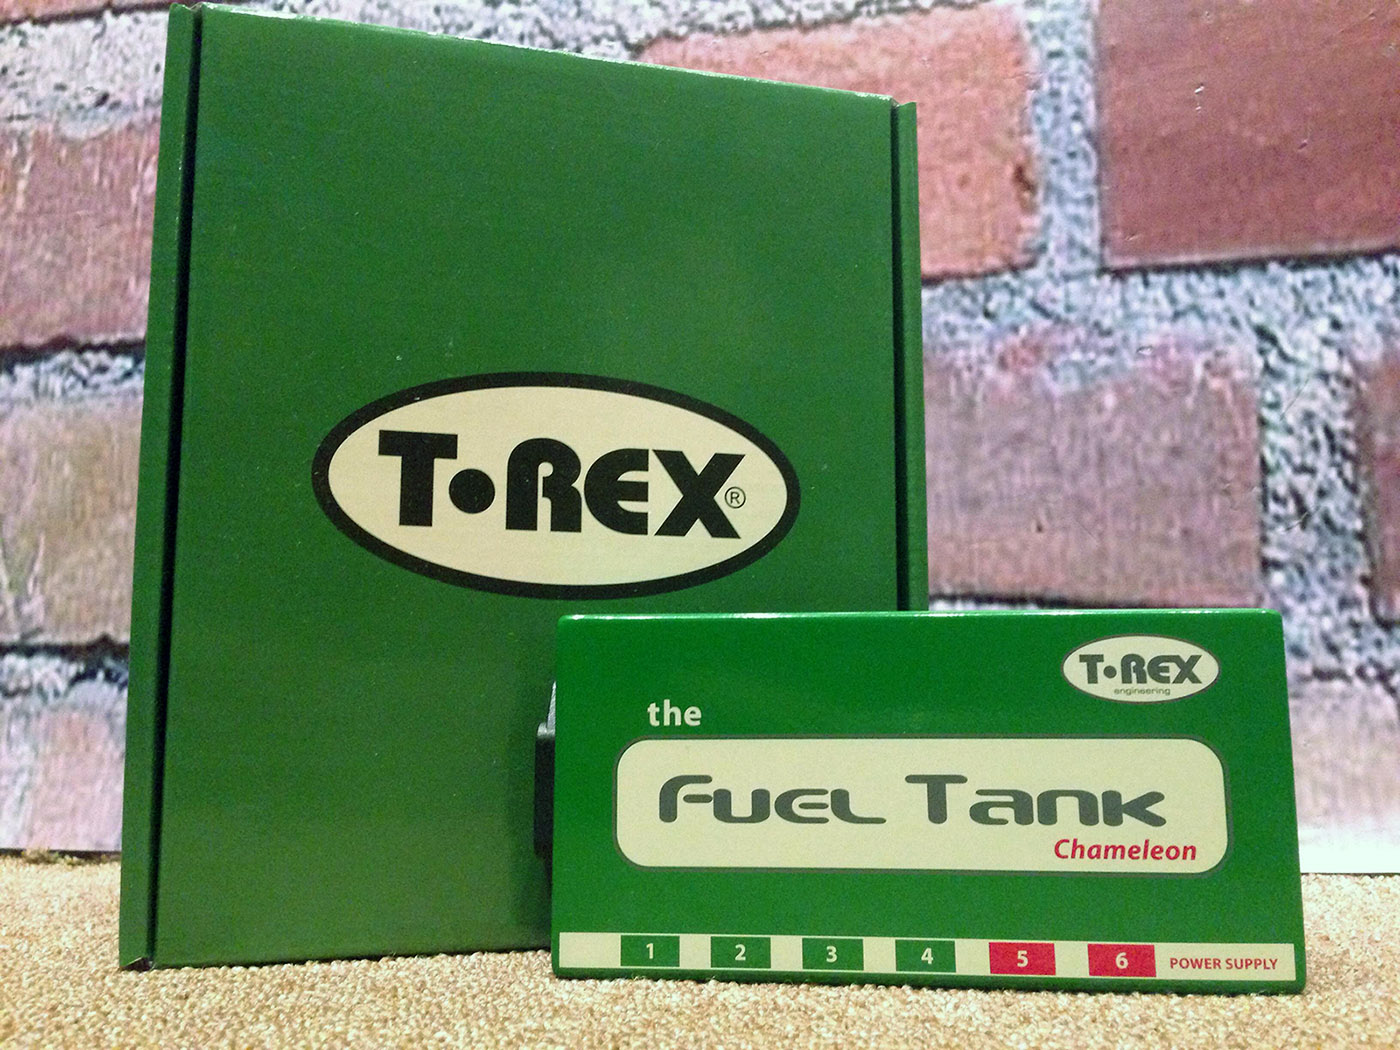 t-rex-fuel-tank-chameleon-power-supply